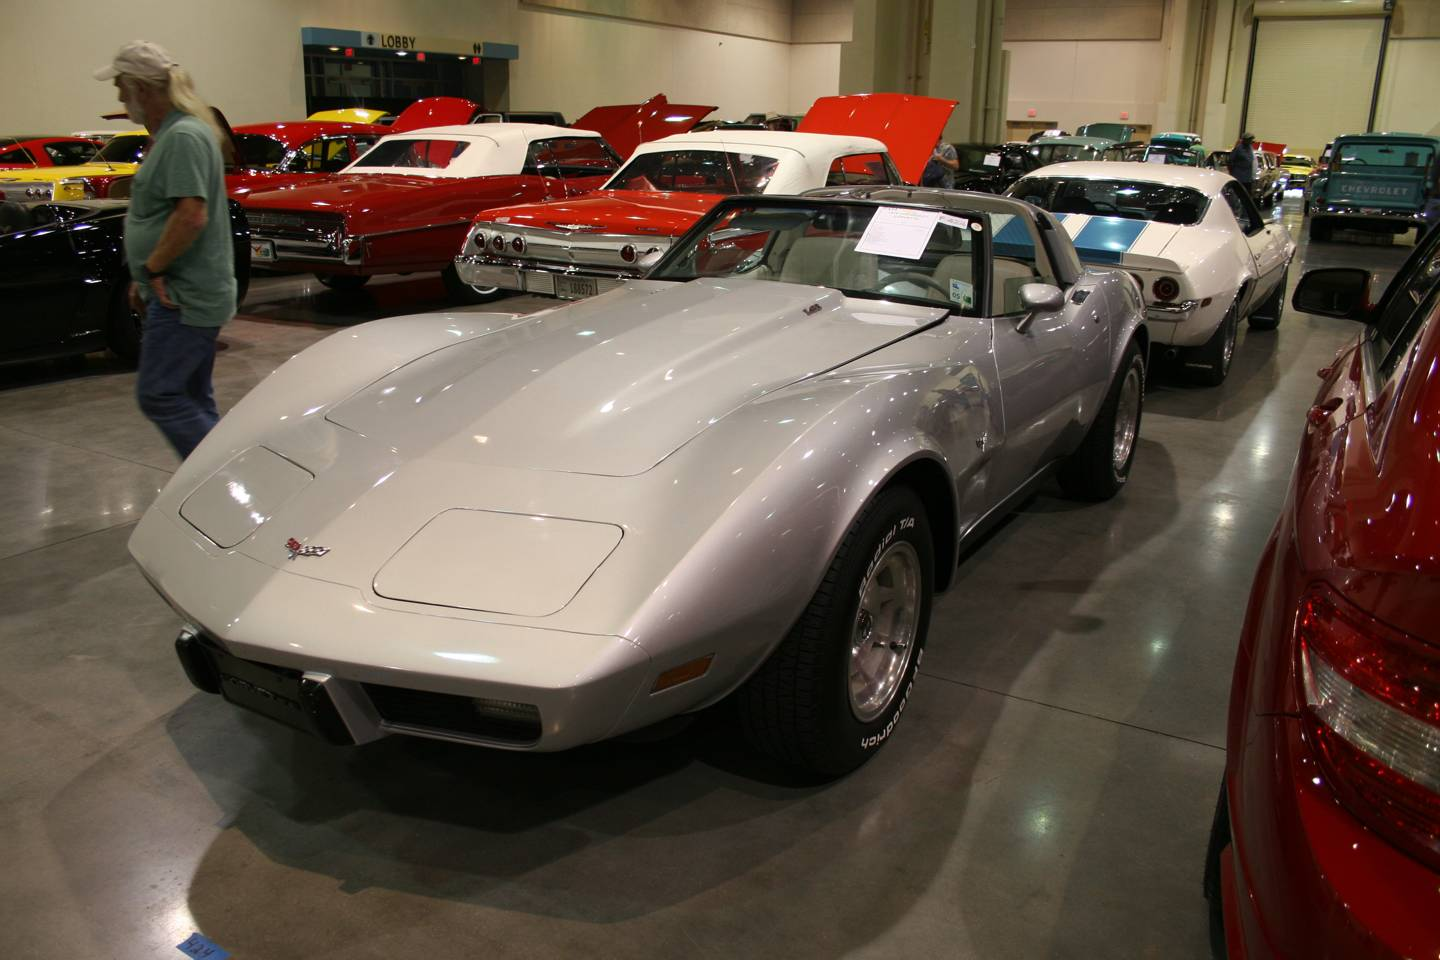 CHEVROLET CORVETTE For Sale At Vicari Auctions Nocona Tx - Nocona car show